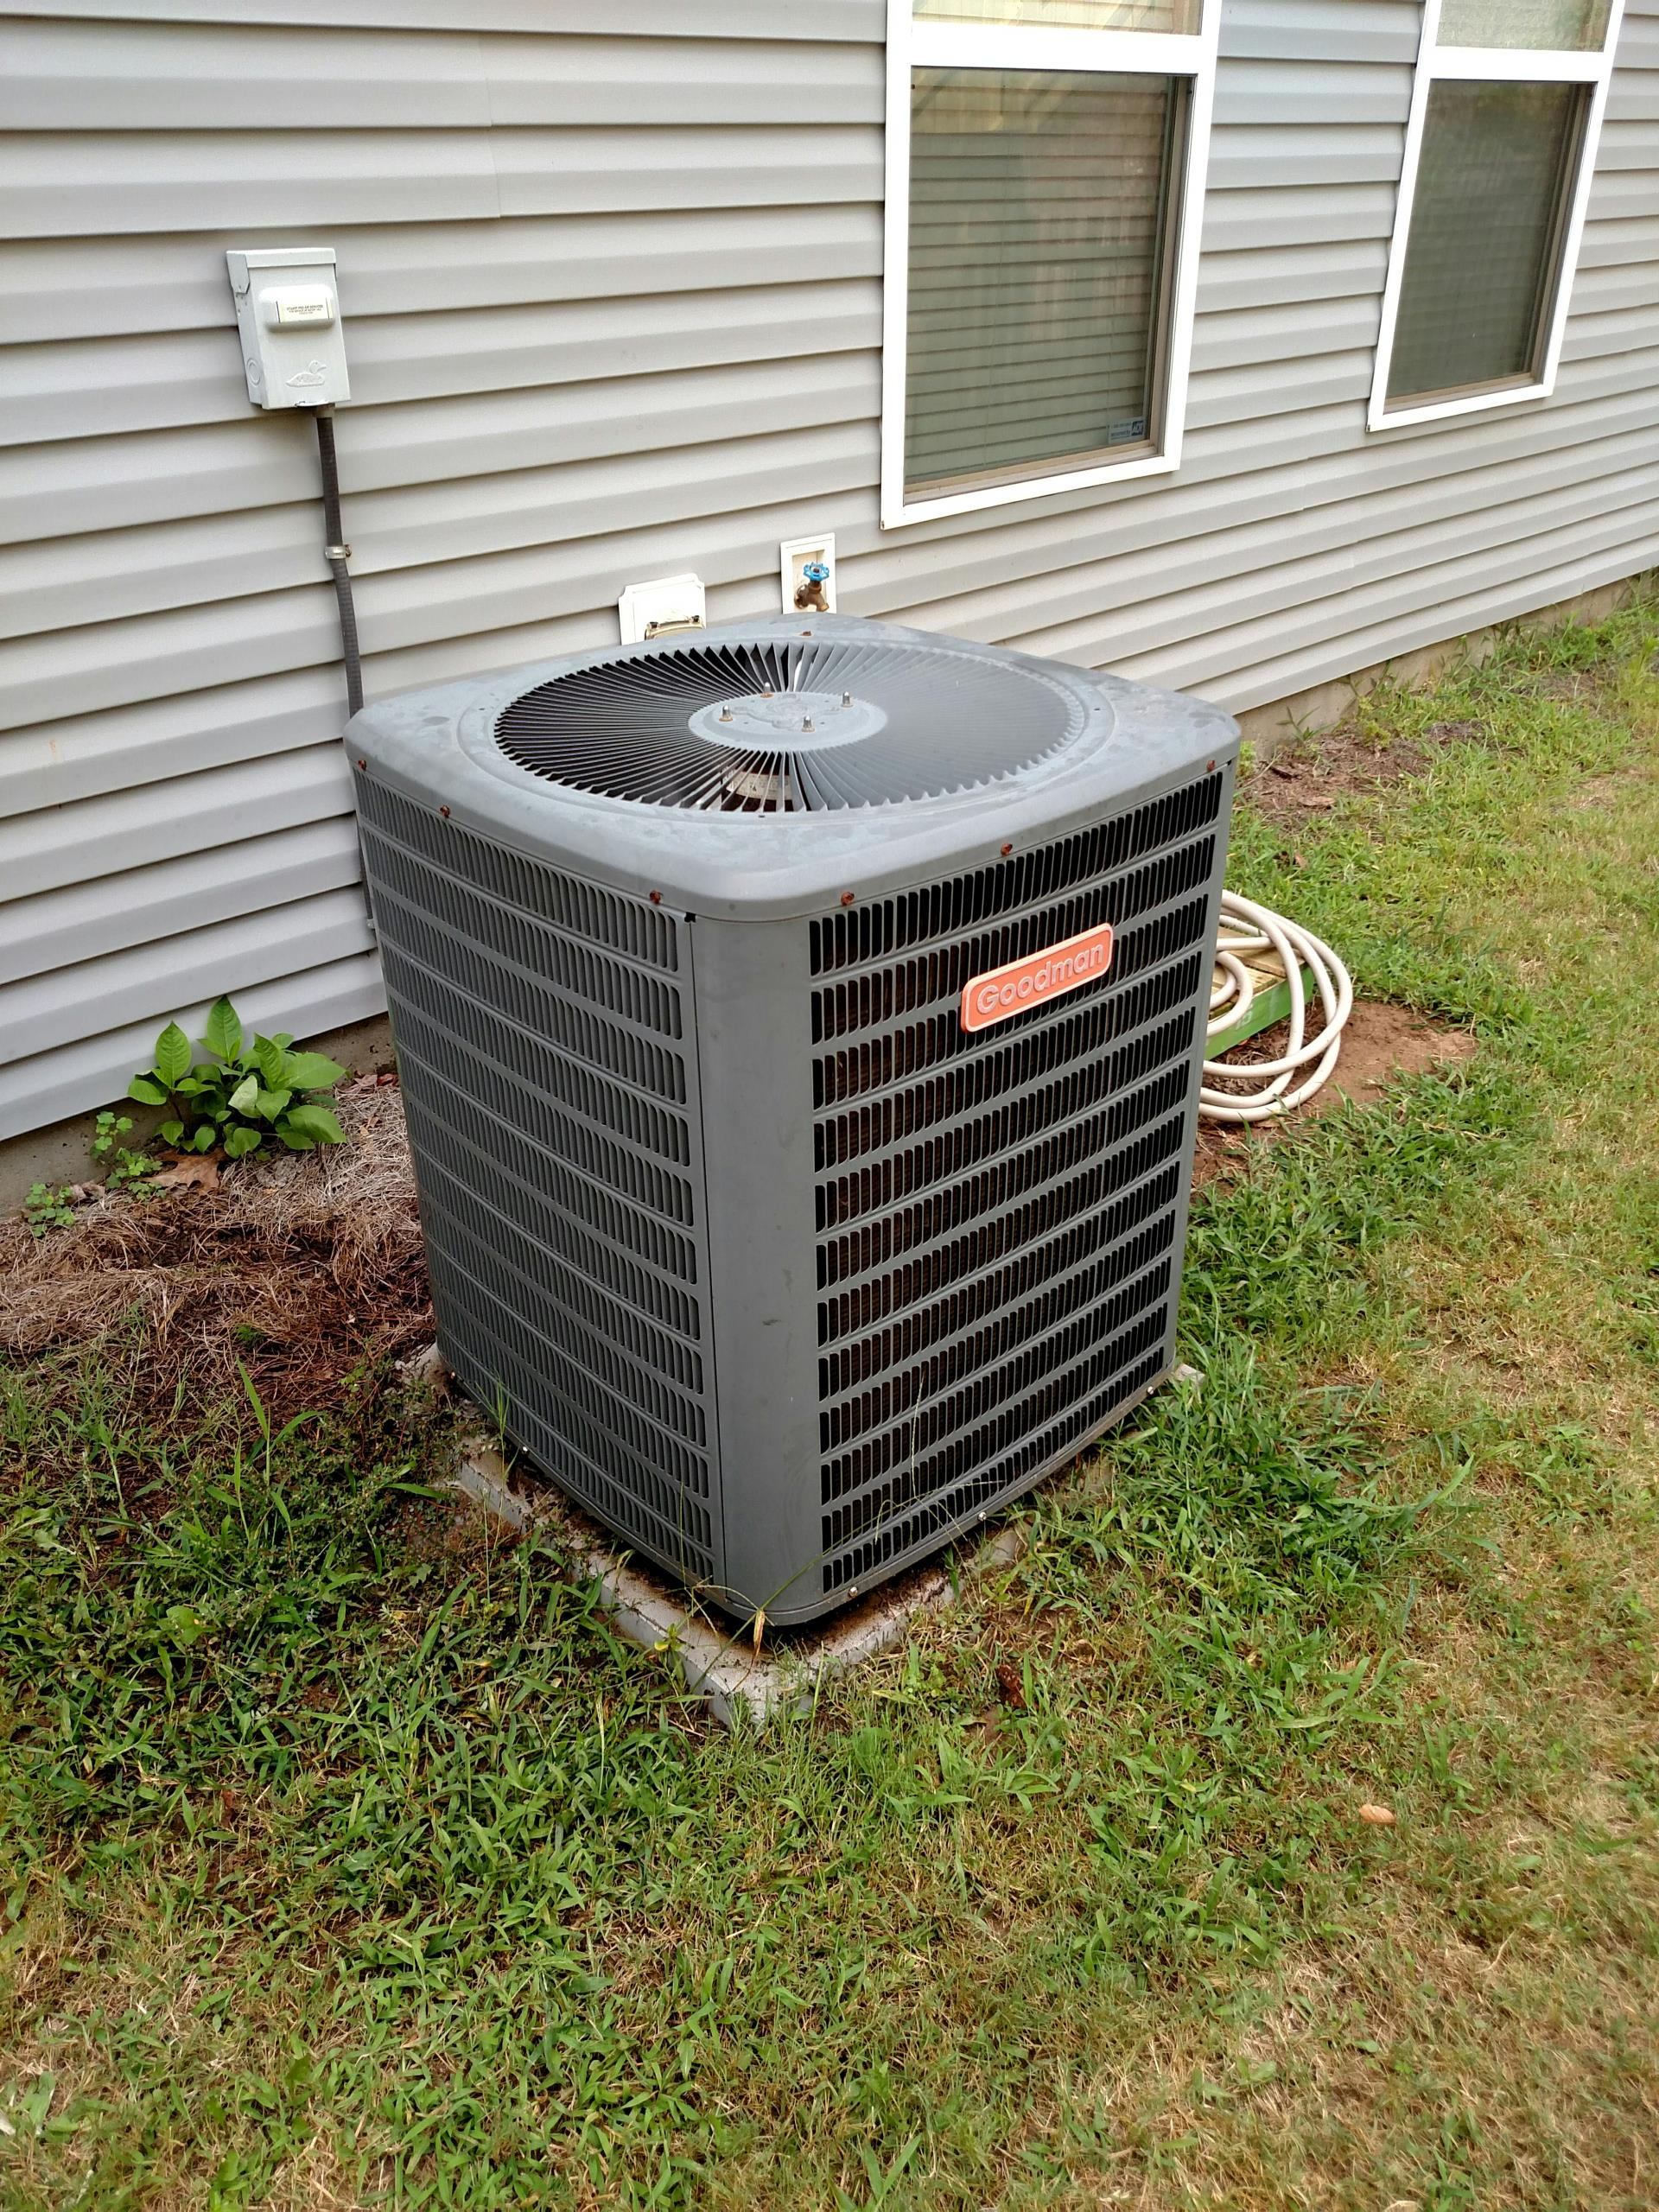 Sugar Hill, GA - Provided maintenance on 8 year old goodman air conditioning system and added an easy start kit